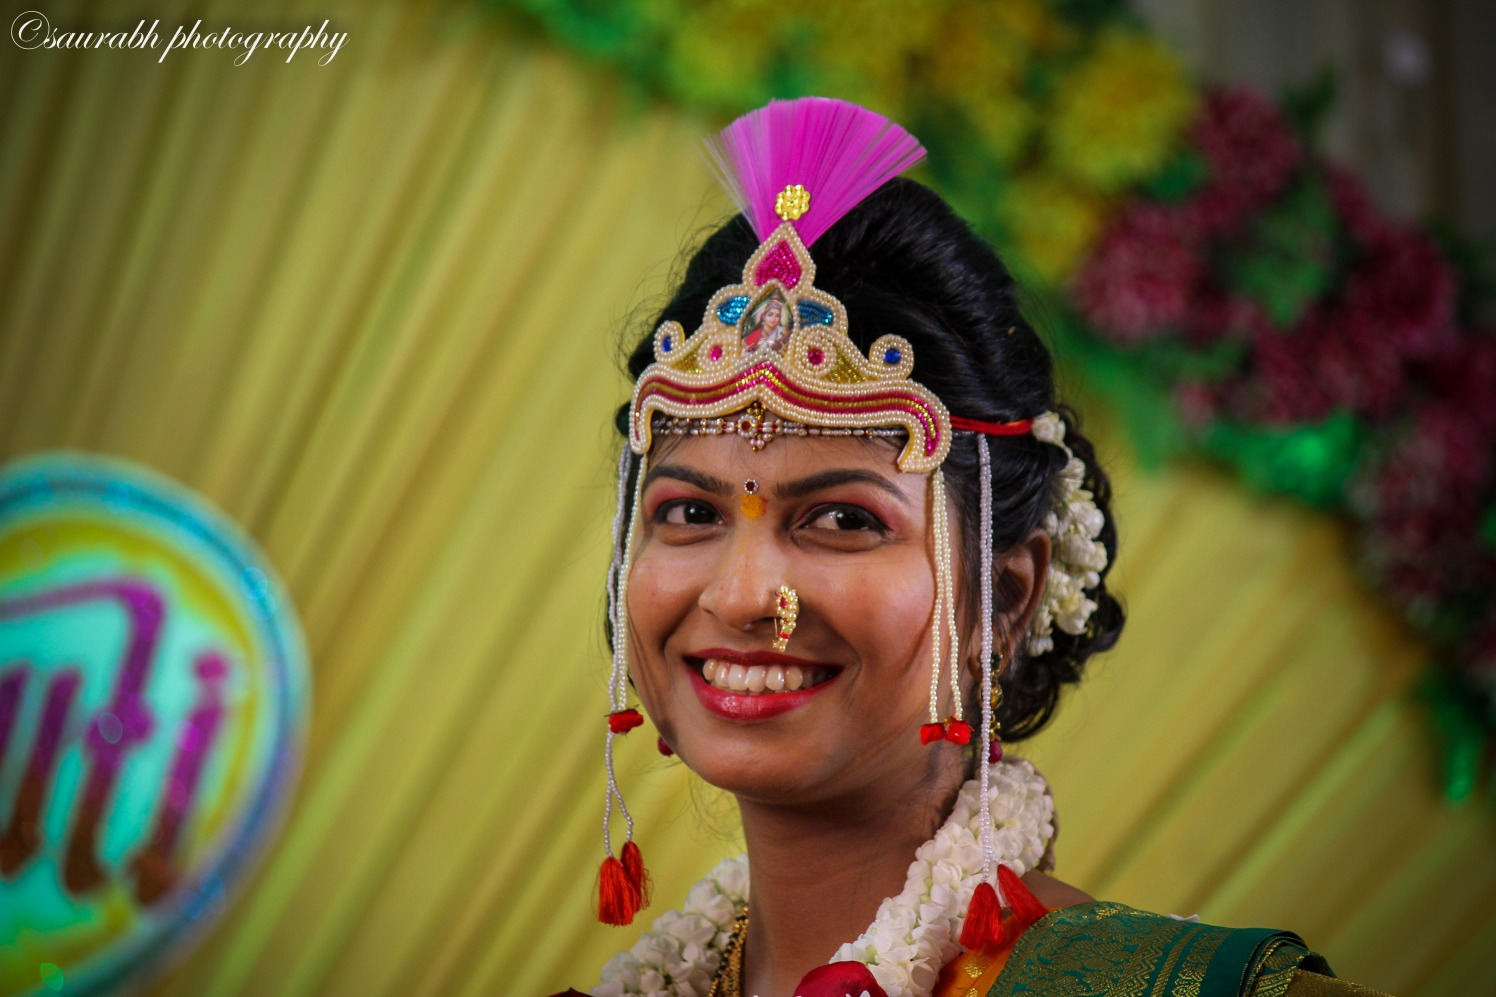 The splendid bride! by Saurabh Photography Wedding-photography | Weddings Photos & Ideas